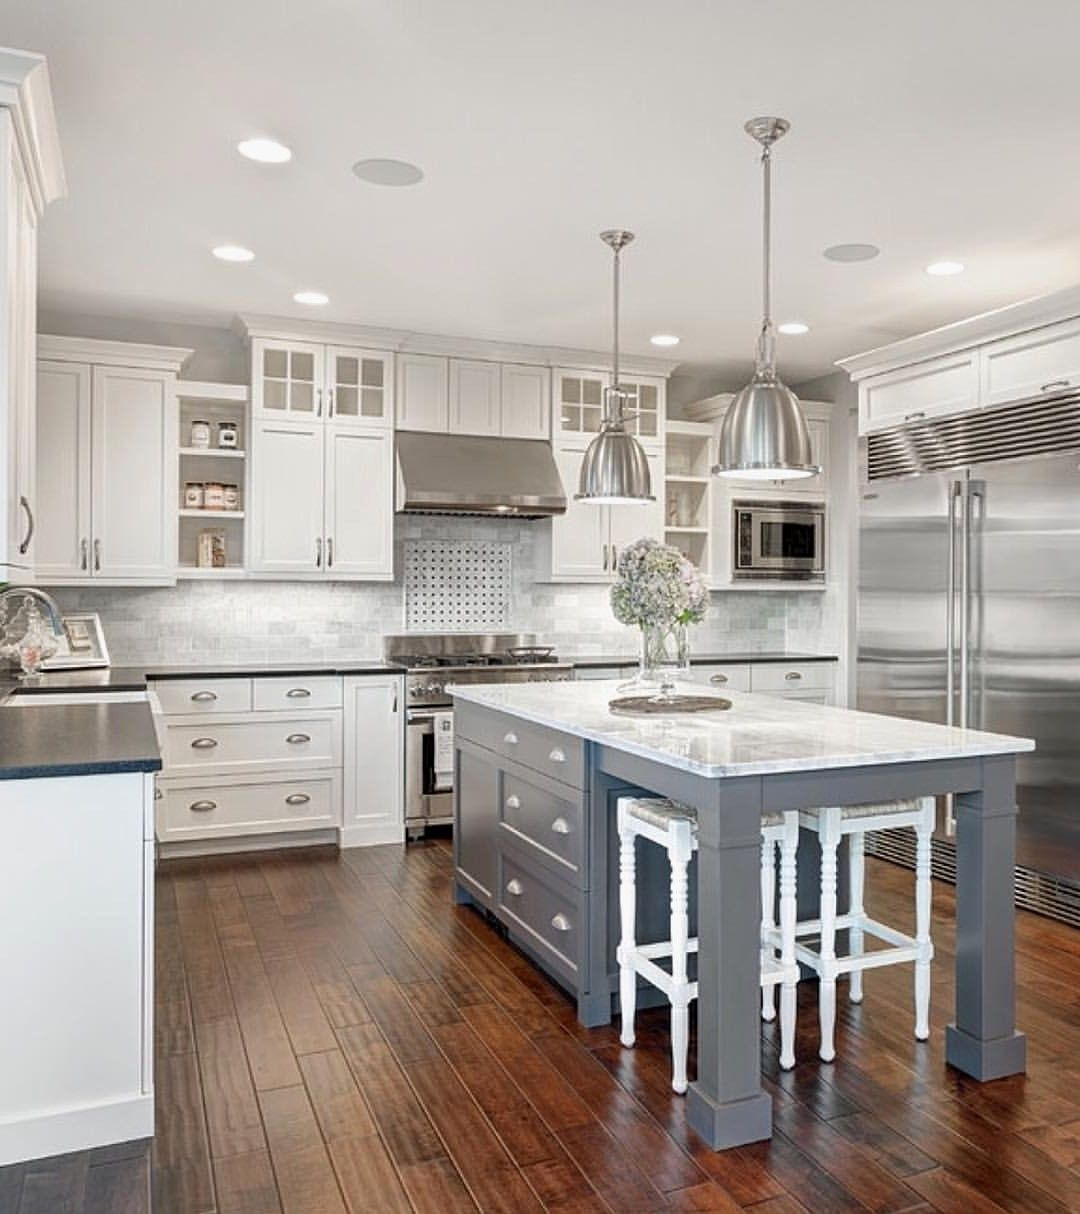 White Kitchen Cabinets With Different Color Island Fresh Contrasting Kitchen Cabinets Stylish Two Tone Looks Grey Kitchen Island Kitchen Island Cabinets Contrasting Kitchen Cabinets